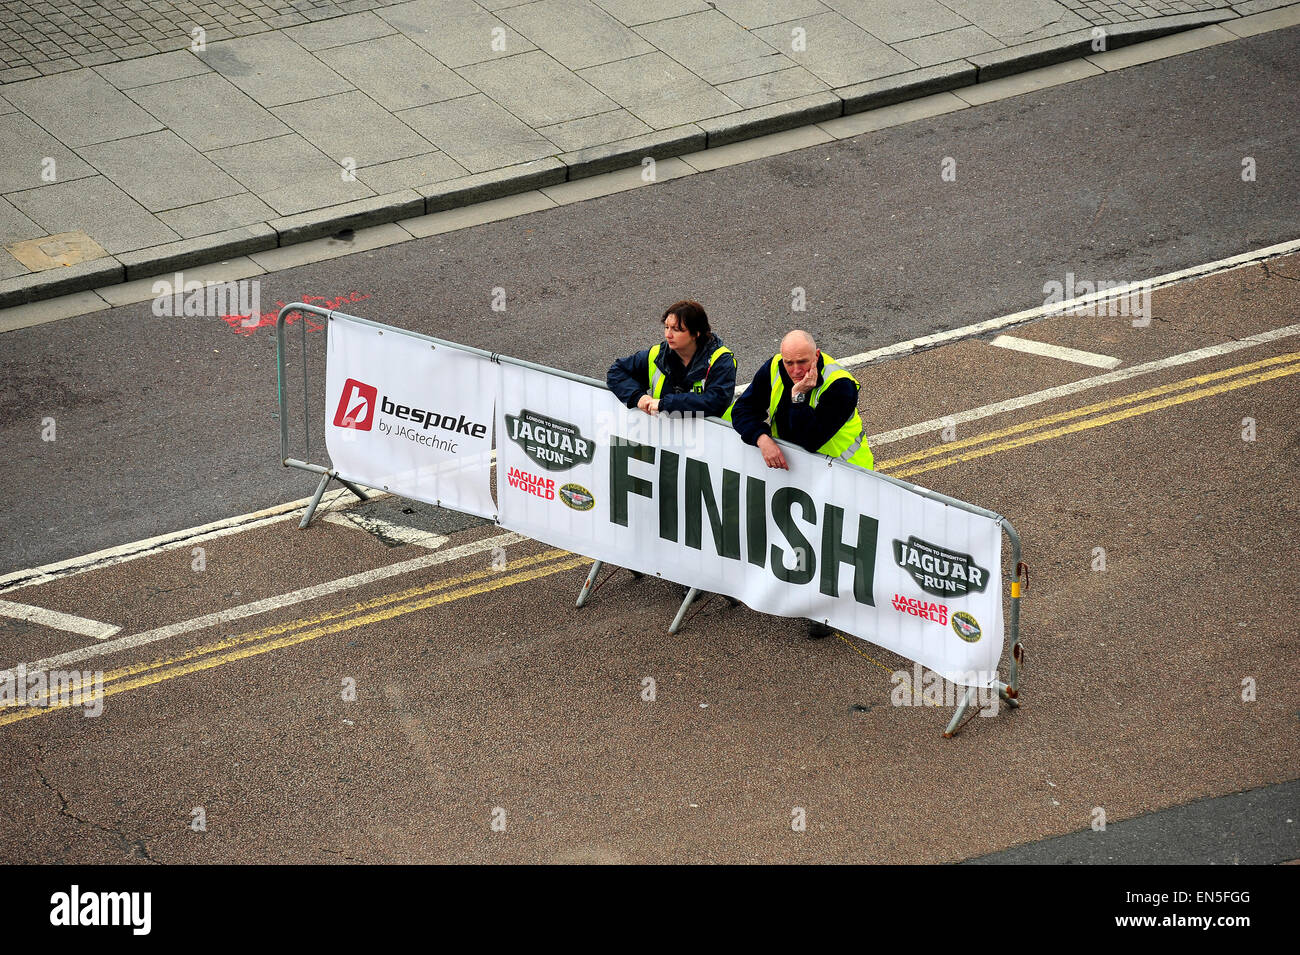 Two marshals at a classic car rally wait by the finish line to greet competitors in Brighton. - Stock Image